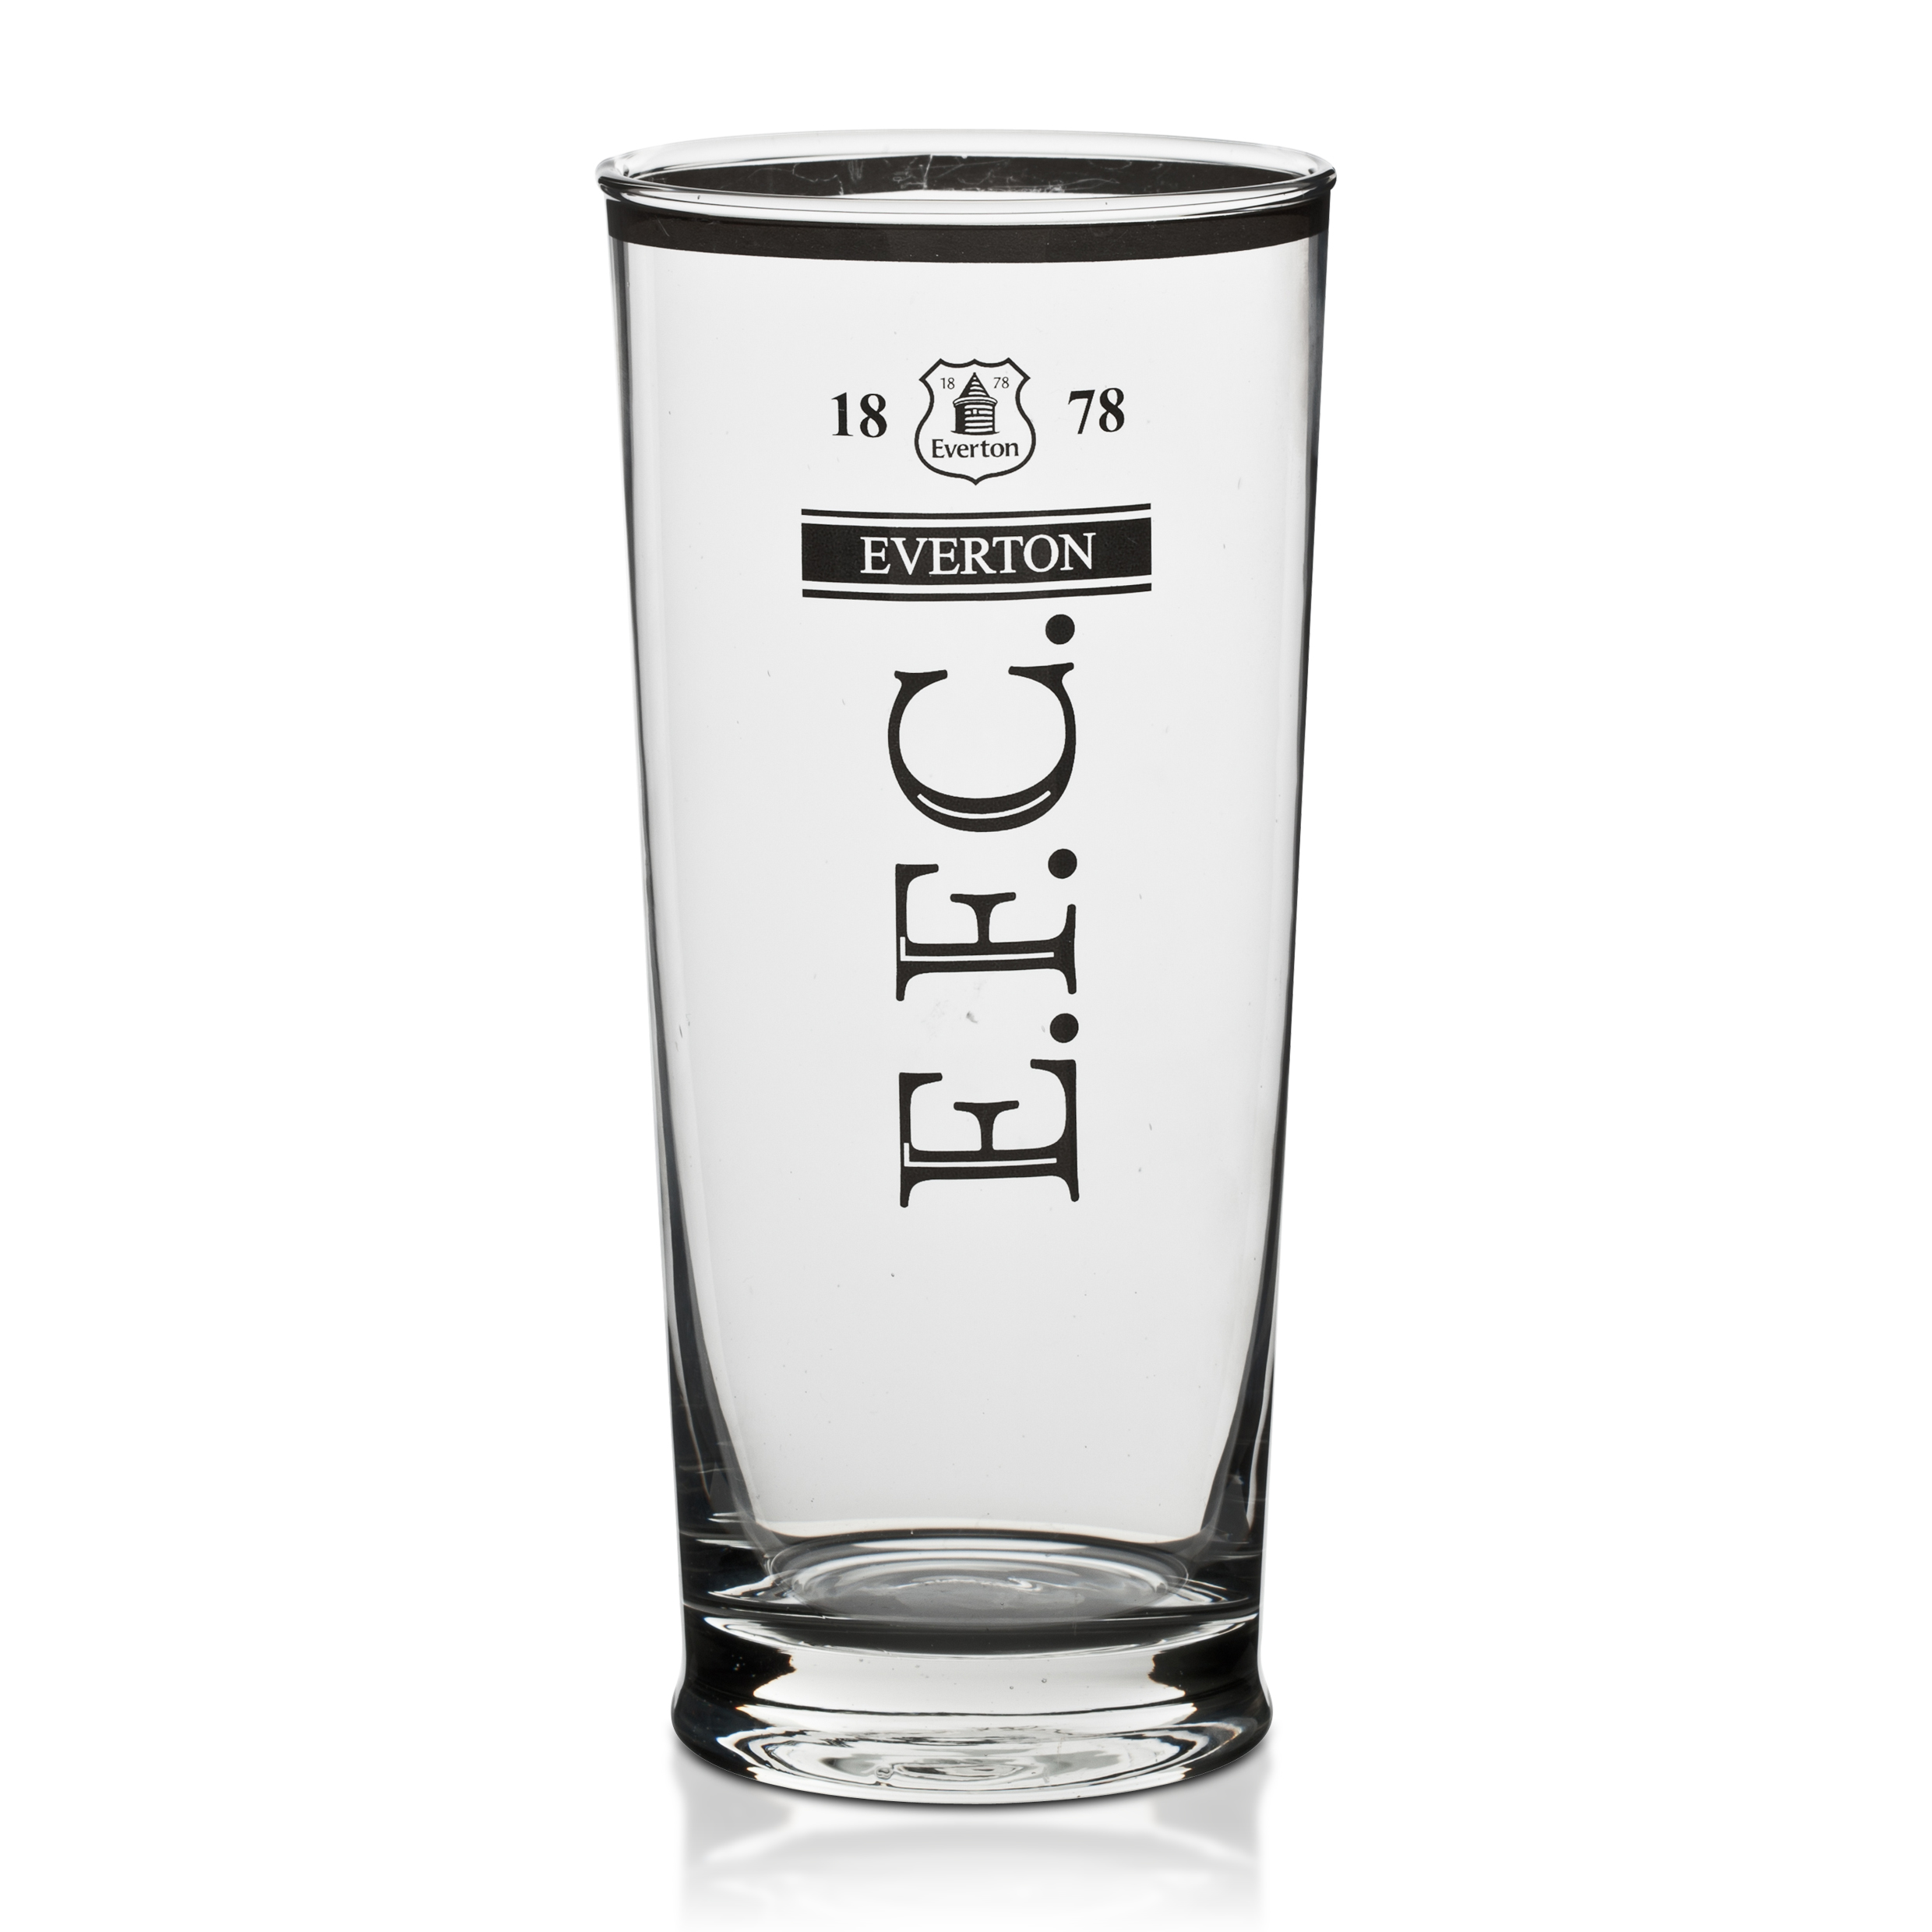 Everton Premium Pint Glass